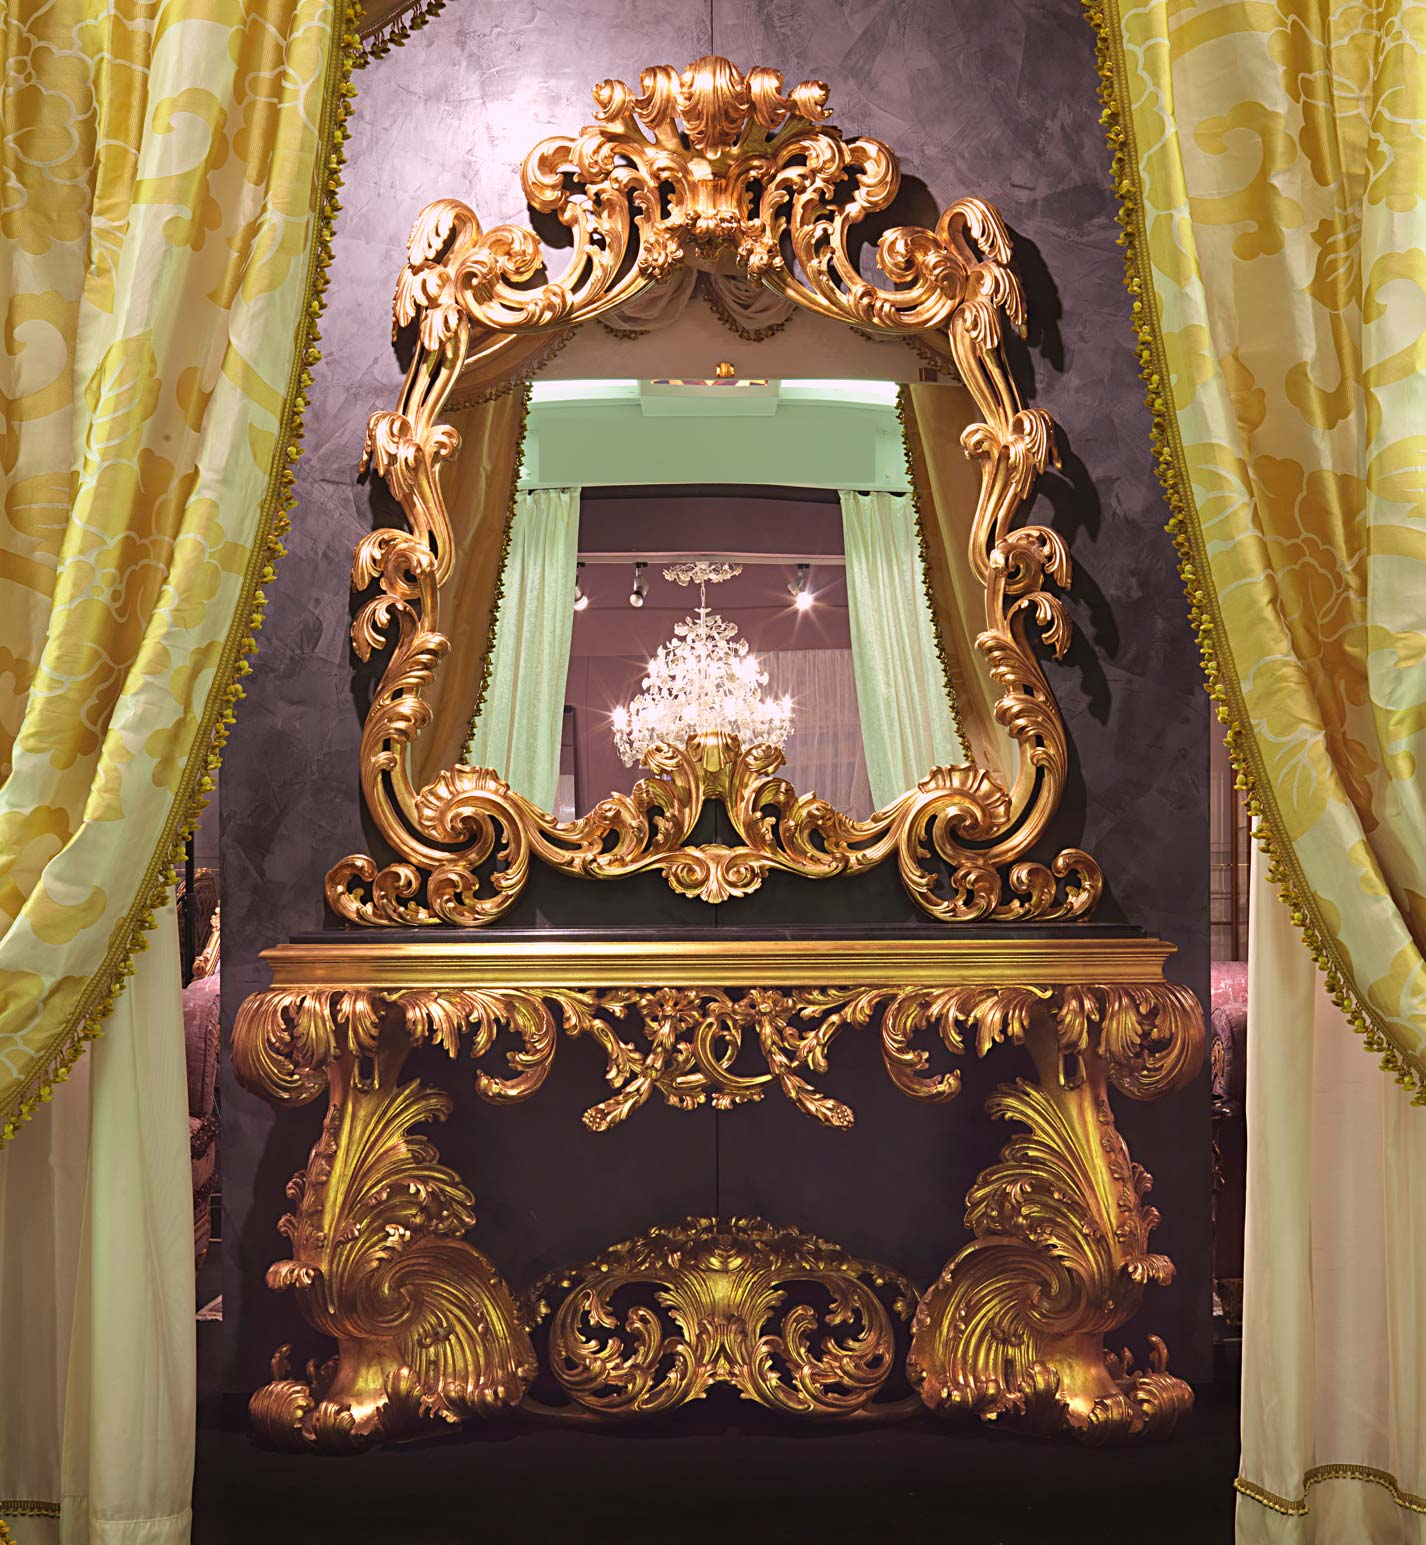 baroque italian 17th century console vimercati classic furniture. Black Bedroom Furniture Sets. Home Design Ideas